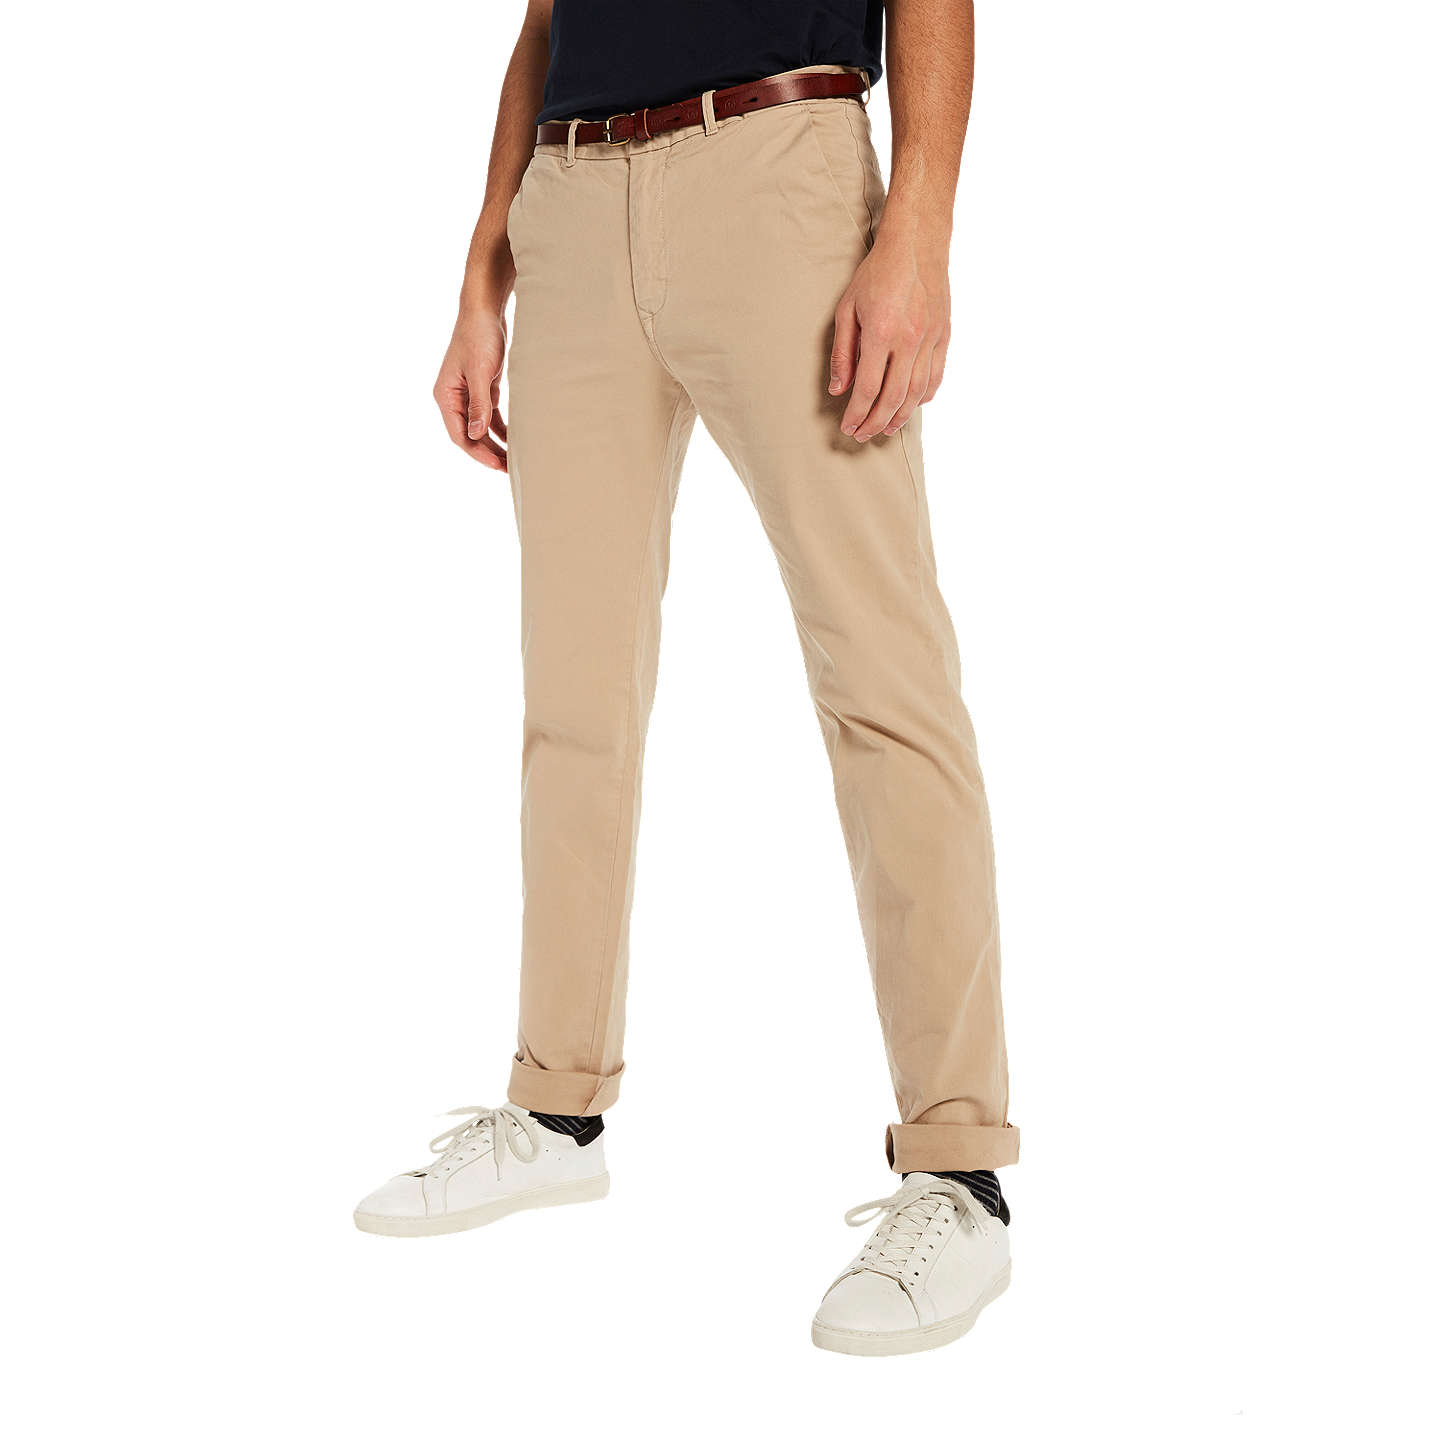 Scotch & Soda Stuart Slim Fit Chinos, Sand by Scotch & Soda